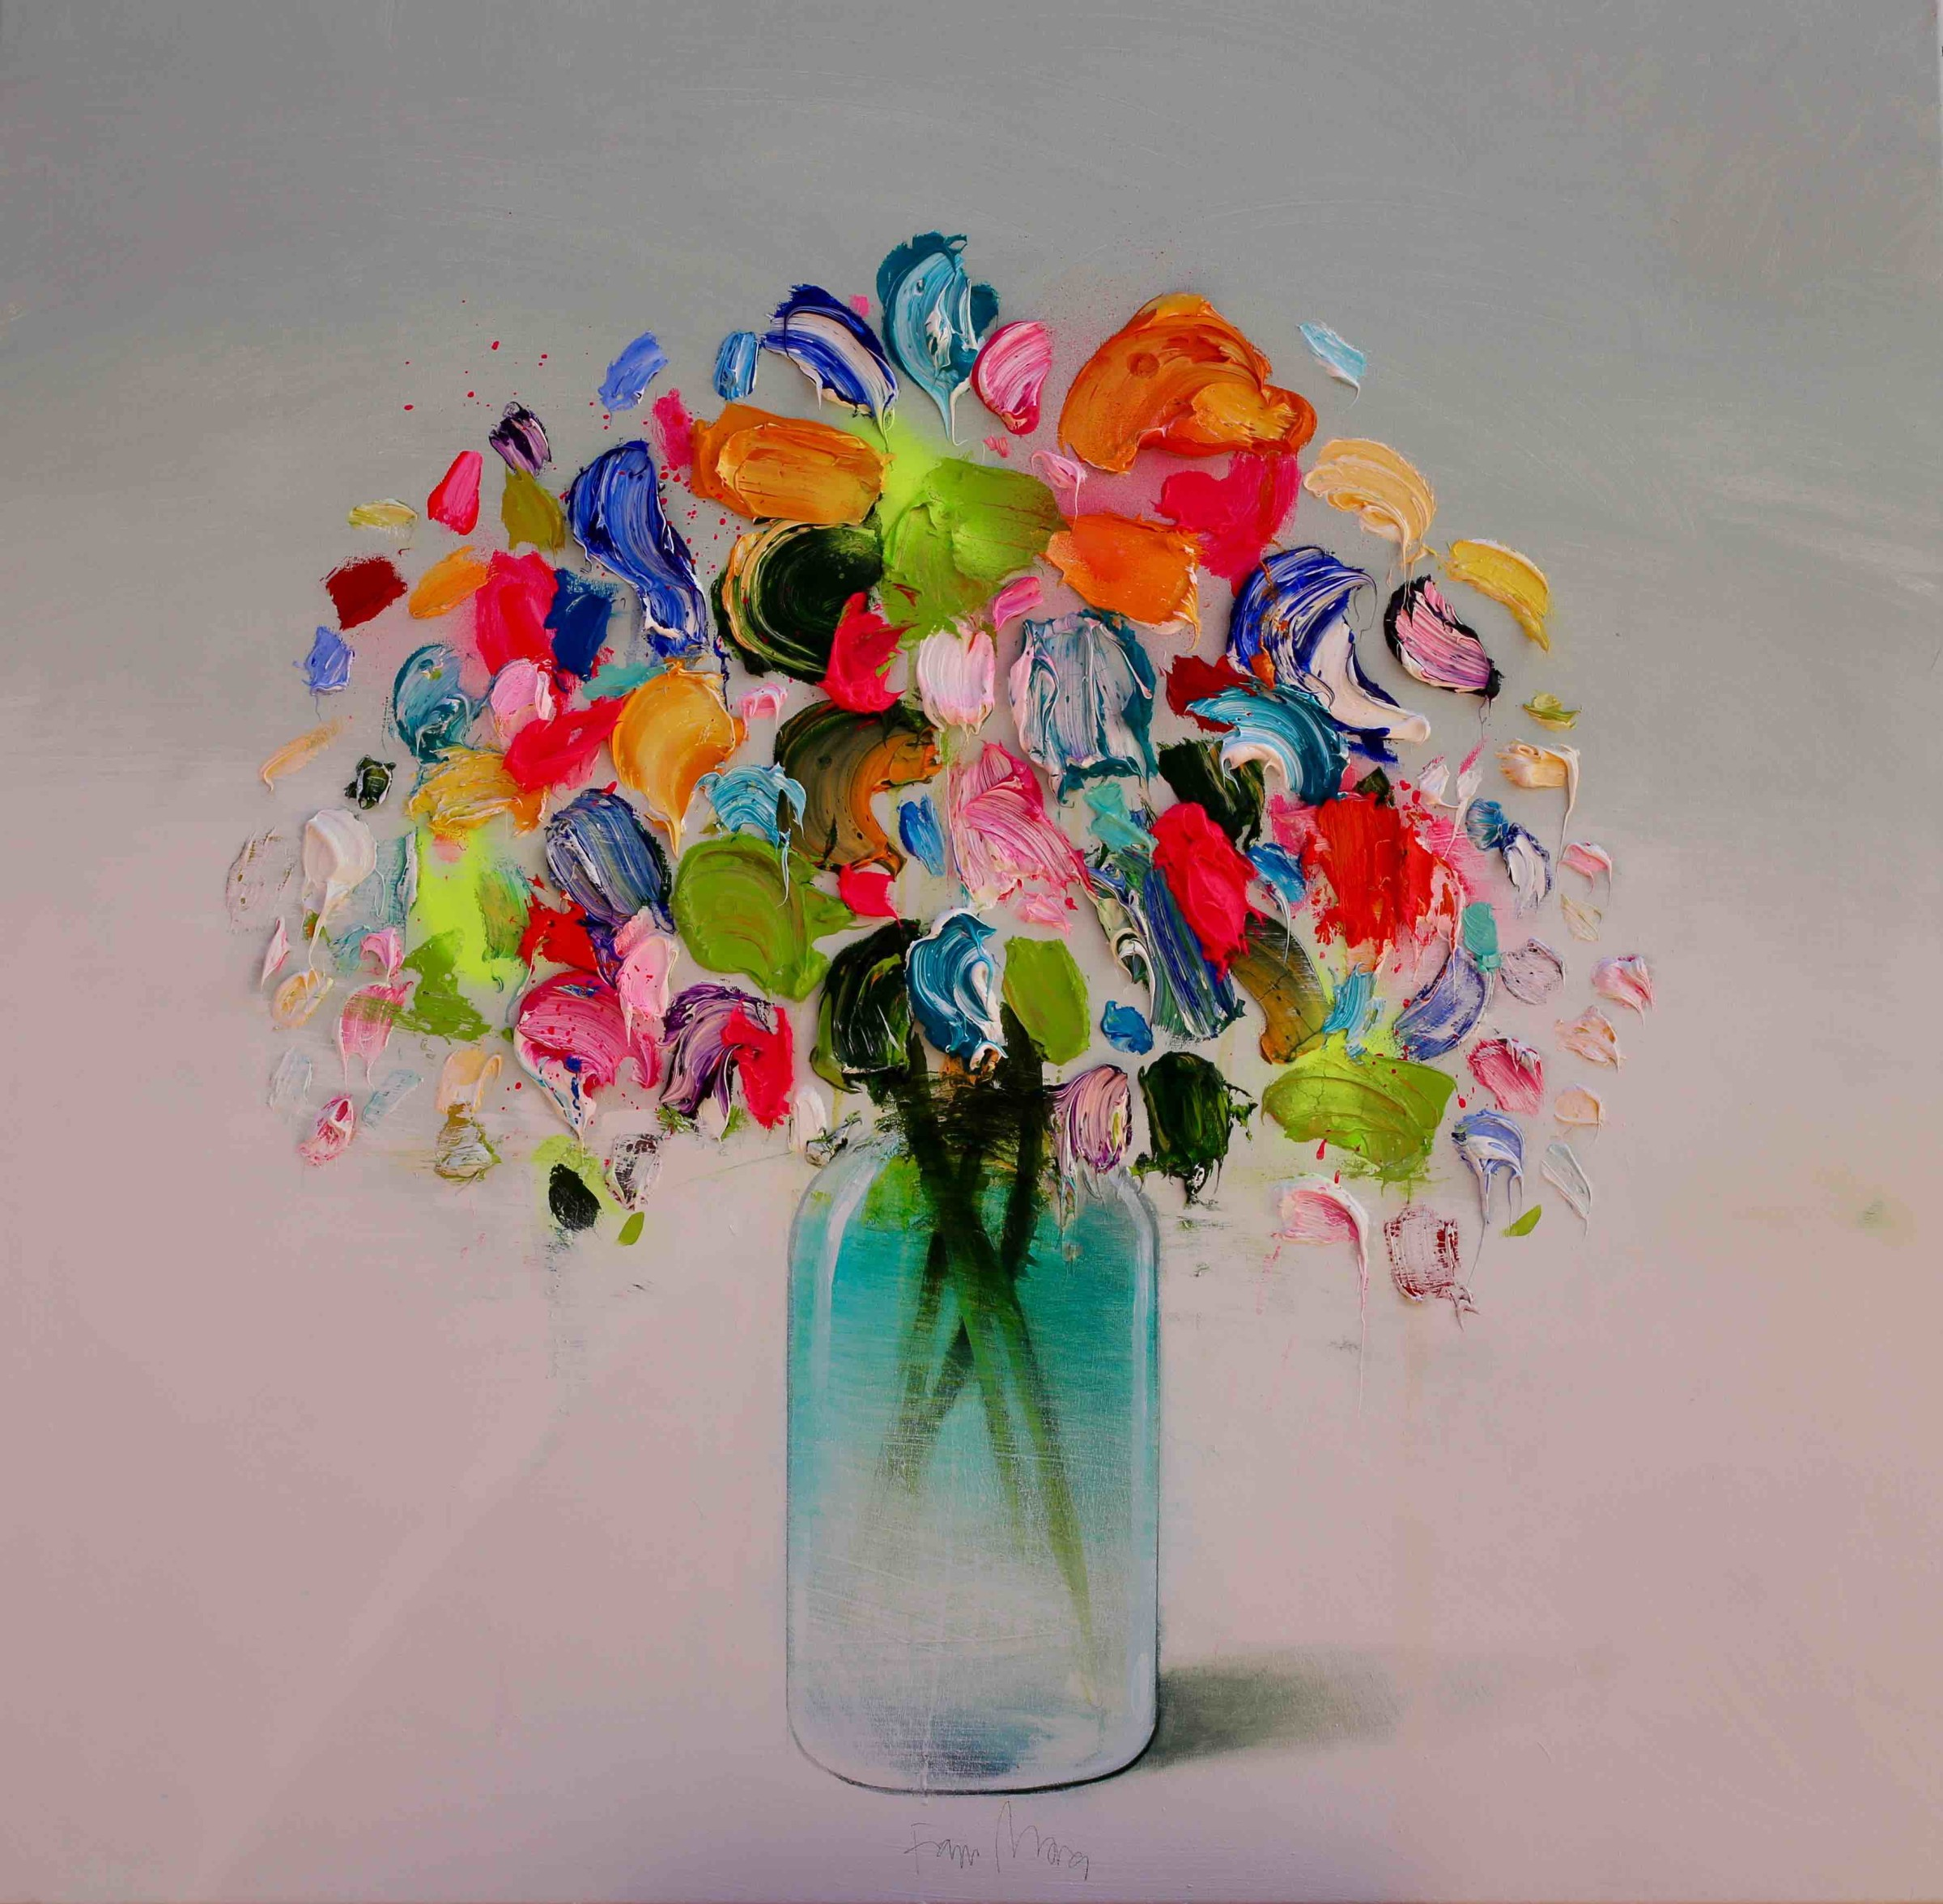 <span class=&#34;link fancybox-details-link&#34;><a href=&#34;/artists/195-fran-mora/works/2782-fran-mora-textured-flowers-green-vase/&#34;>View Detail Page</a></span><div class=&#34;artist&#34;><strong>Fran Mora</strong></div> <div class=&#34;title&#34;><em>Textured Flowers (Green Vase)</em></div> <div class=&#34;medium&#34;>Oil on Canvas (framed)</div> <div class=&#34;dimensions&#34;>100 x 100 cm </div><div class=&#34;copyright_line&#34;>Copyright The Artist</div>